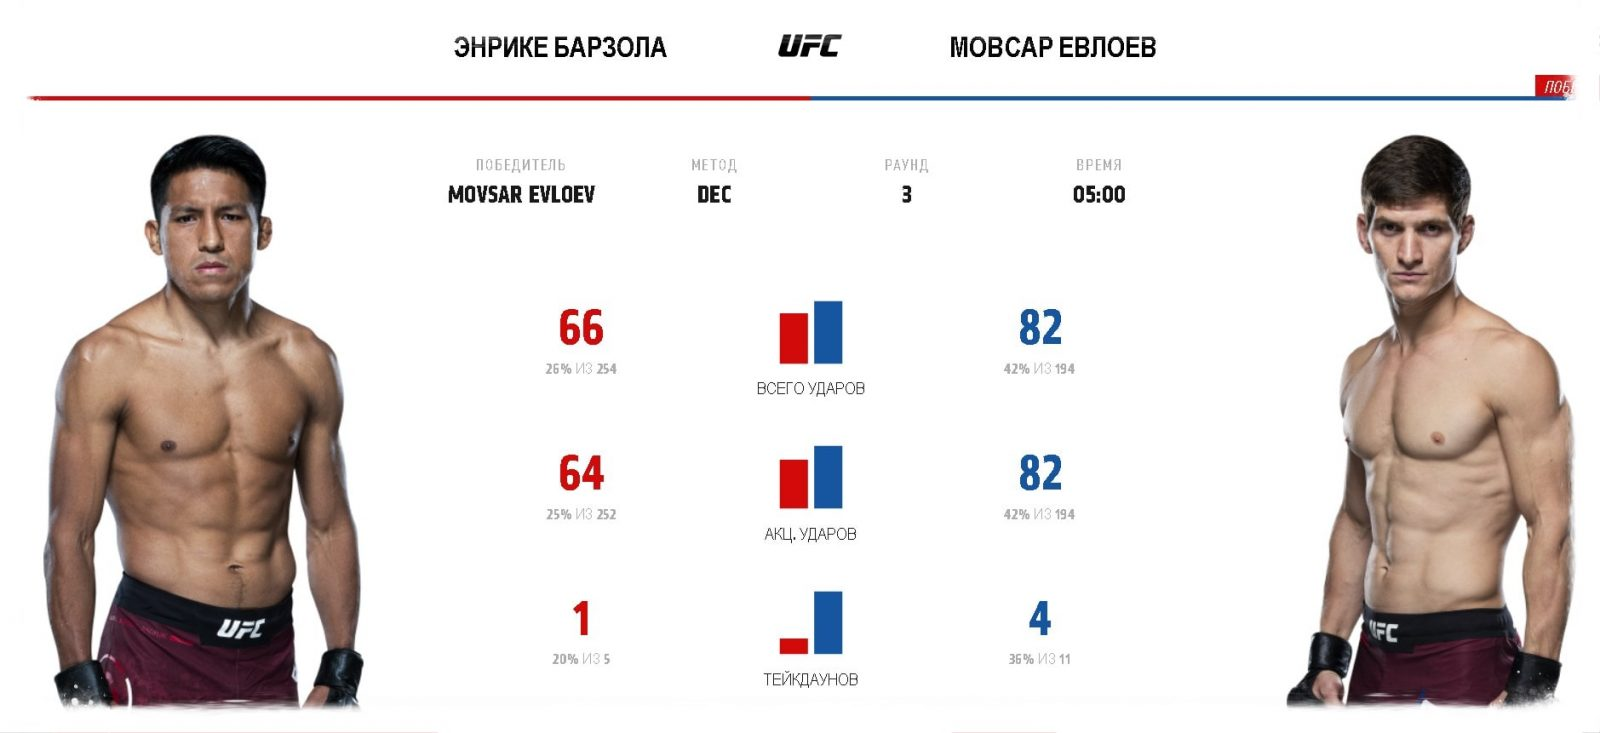 video-boya-movsar-evloev-ehnrike-barsola-ufc-fight-night-162